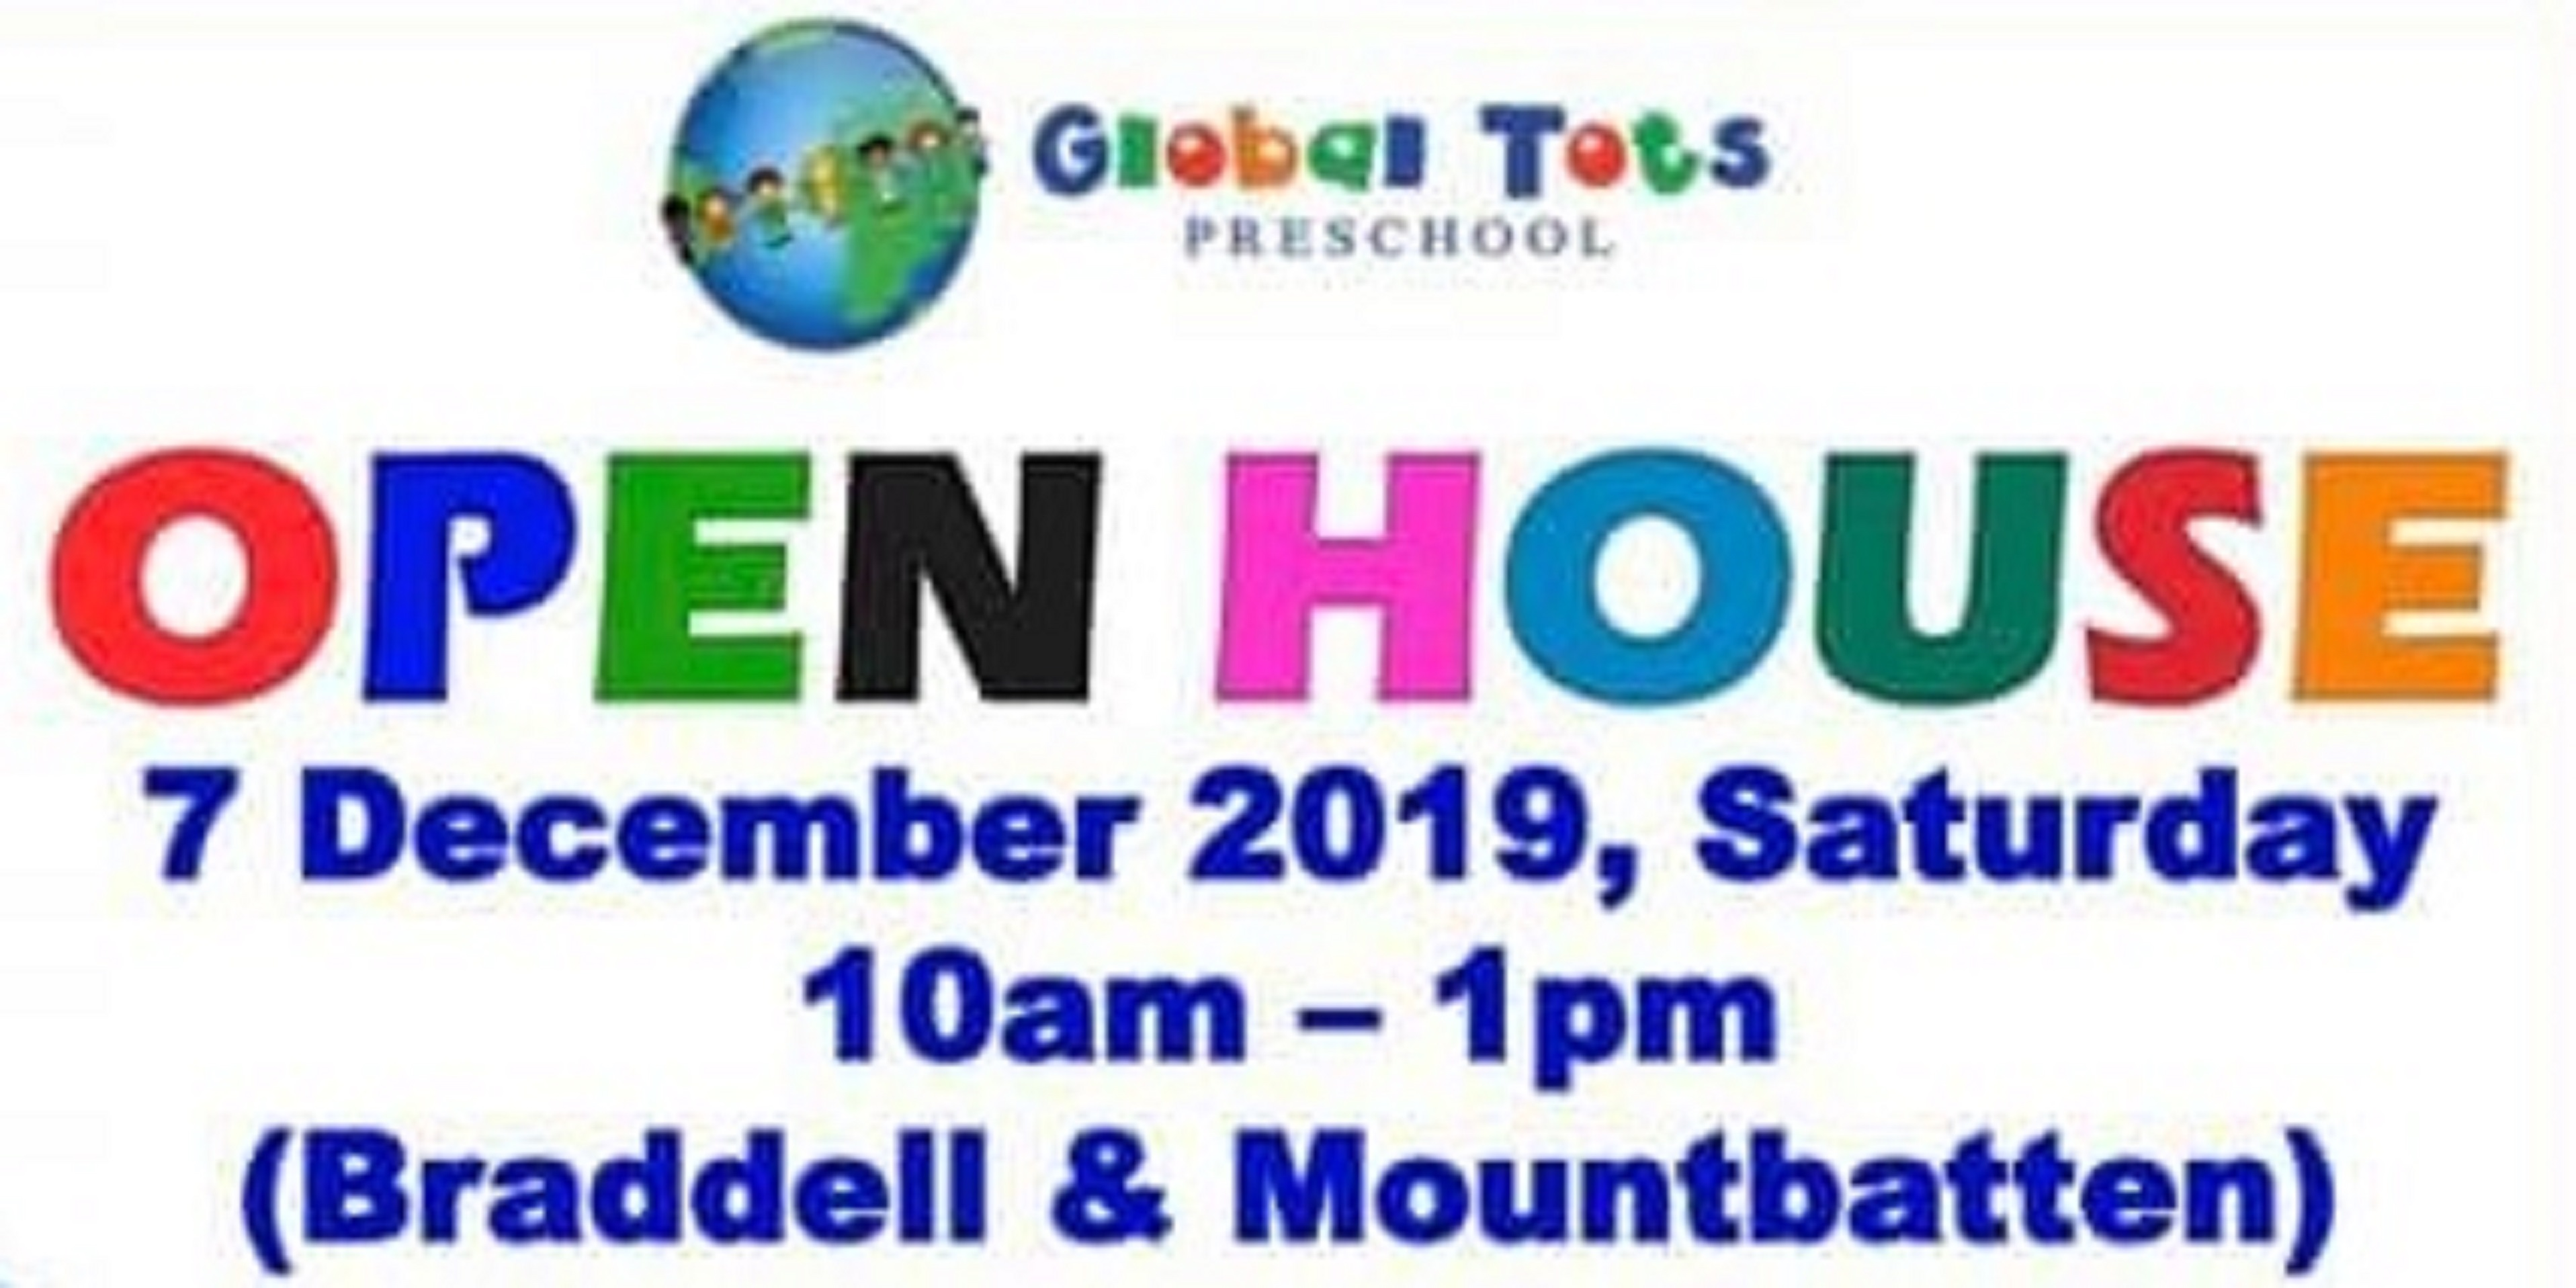 School Tour: Global Tots Preschool